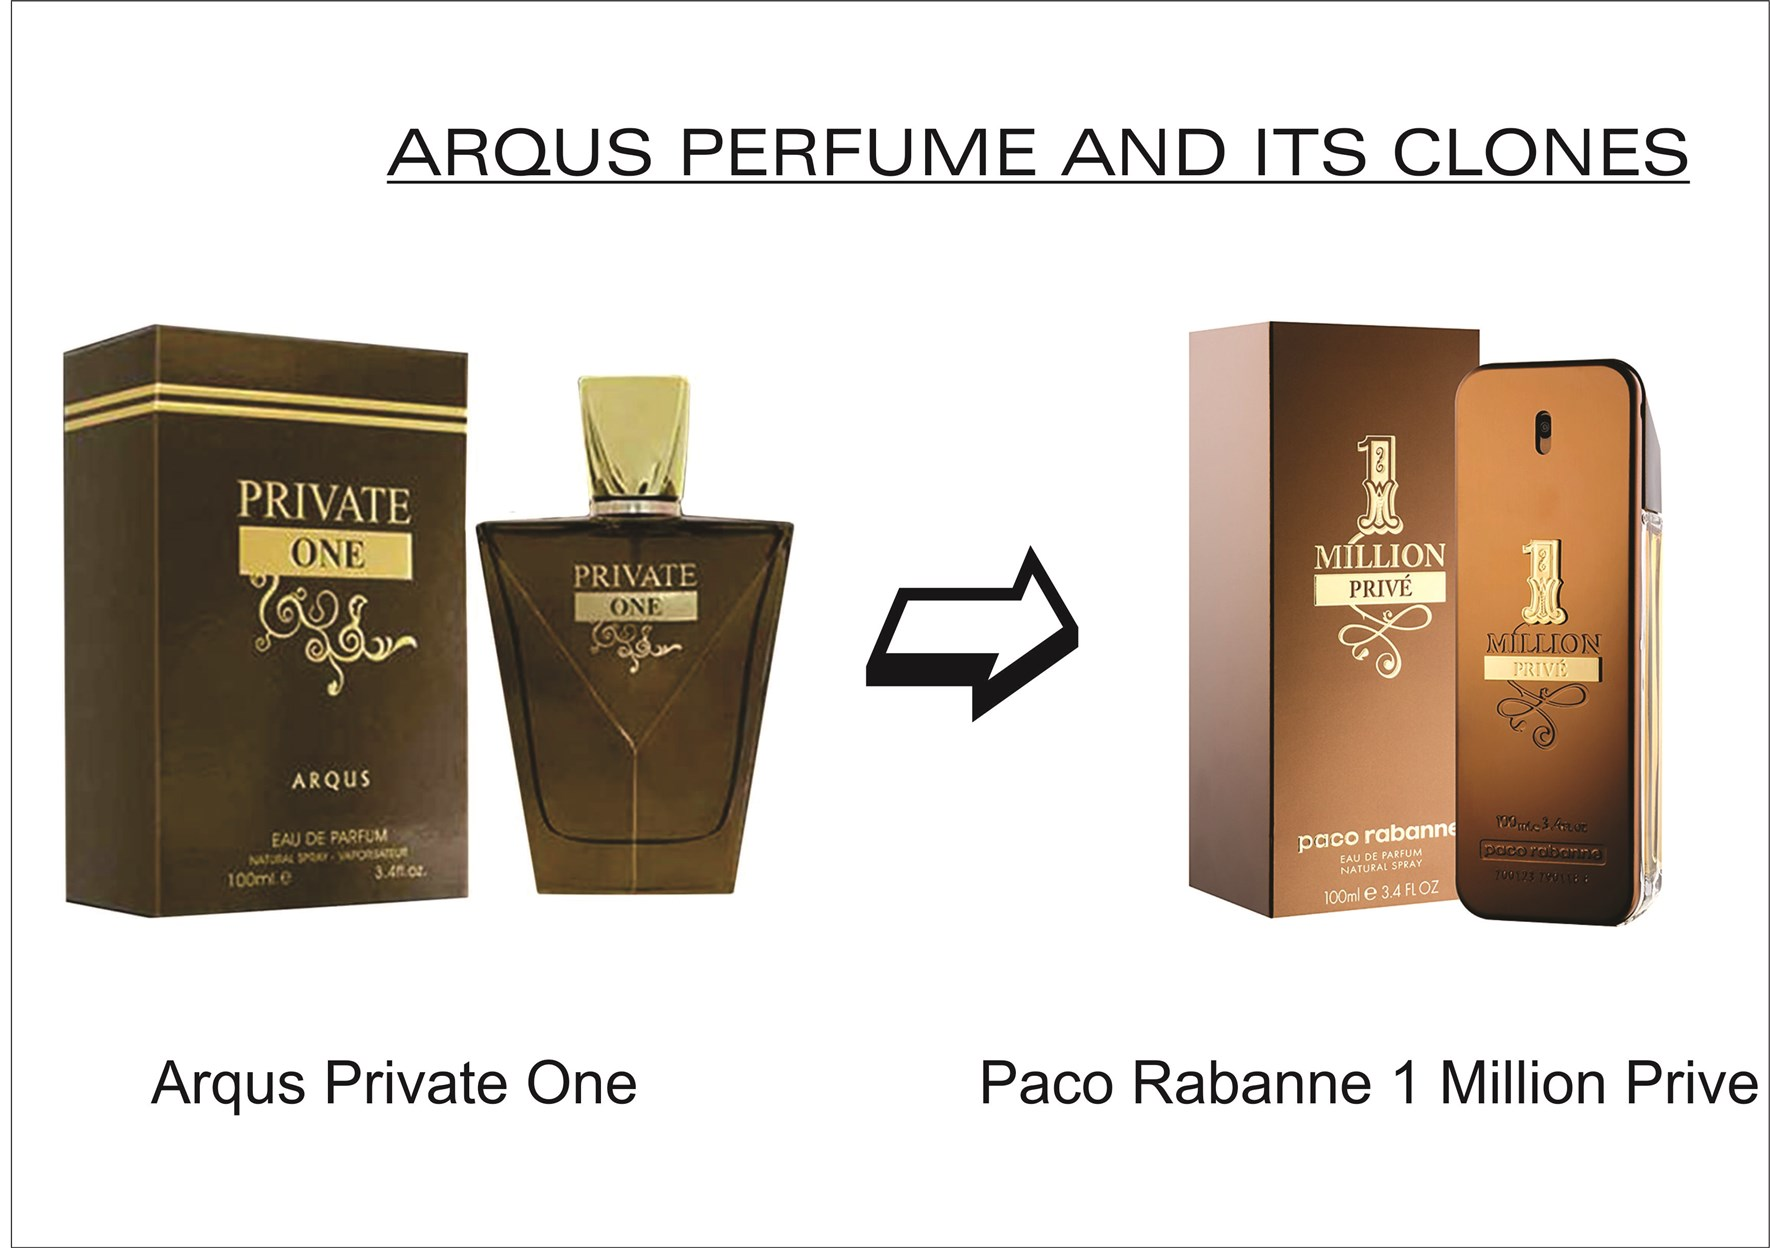 arqus-private-one-for-men-100-ml-edp-by-lattafa-perfumes-paco-rabanne-1-million-prive